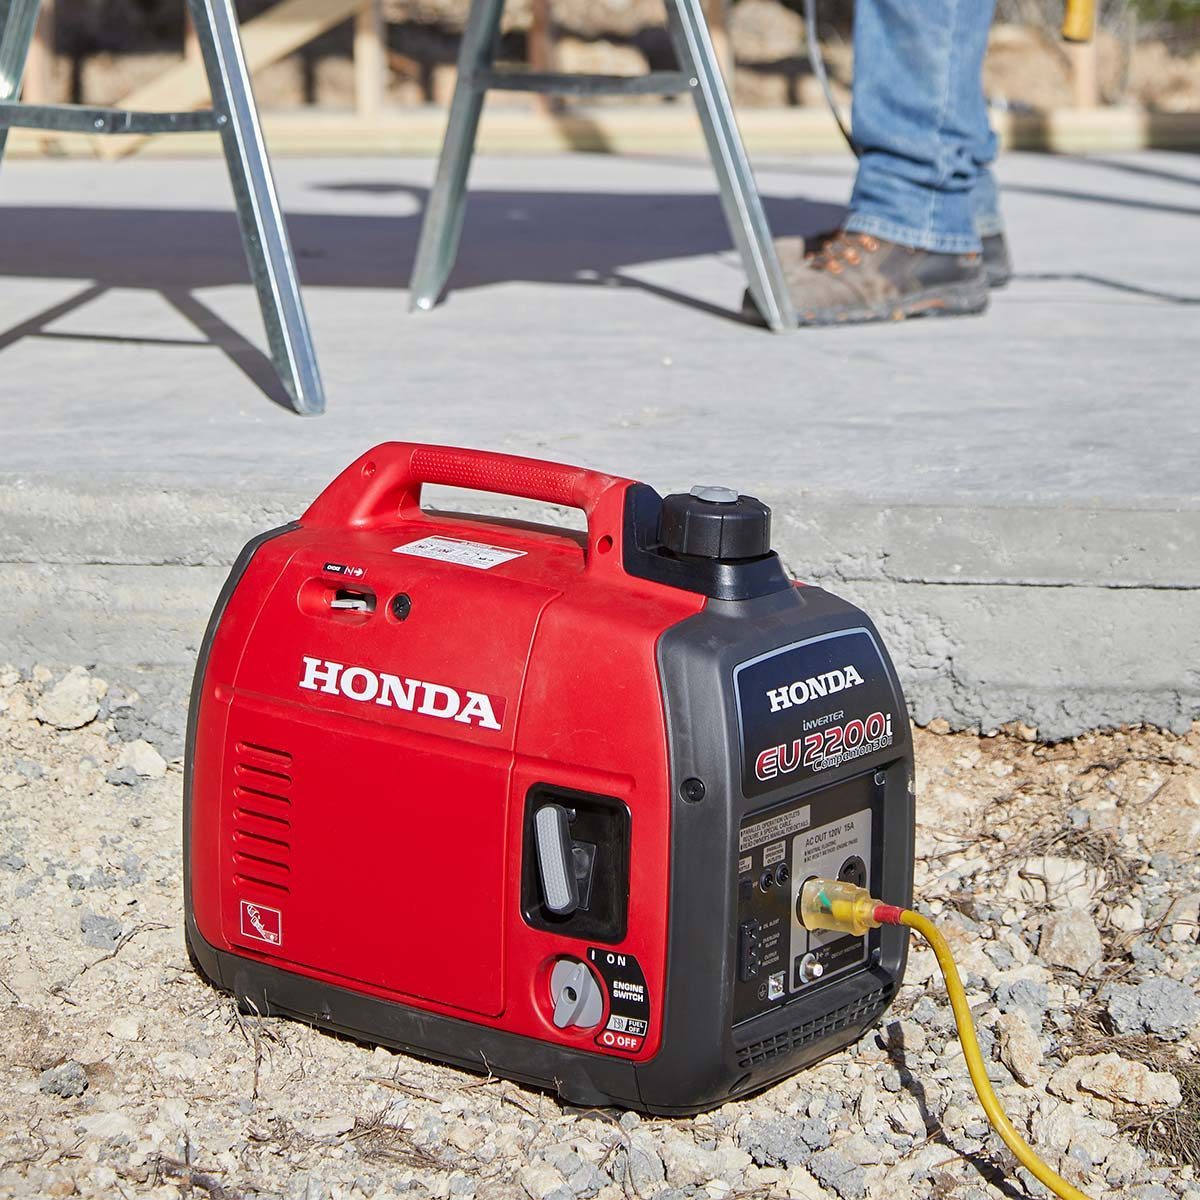 Game Day Shed The Family Handyman Would Like Info On Wiring A For Electricity I Need This Stood Long Way From Any Power Source So We Opted To Use Honda Eu2200i Inverter Generator All Our Electrical Needs Along With